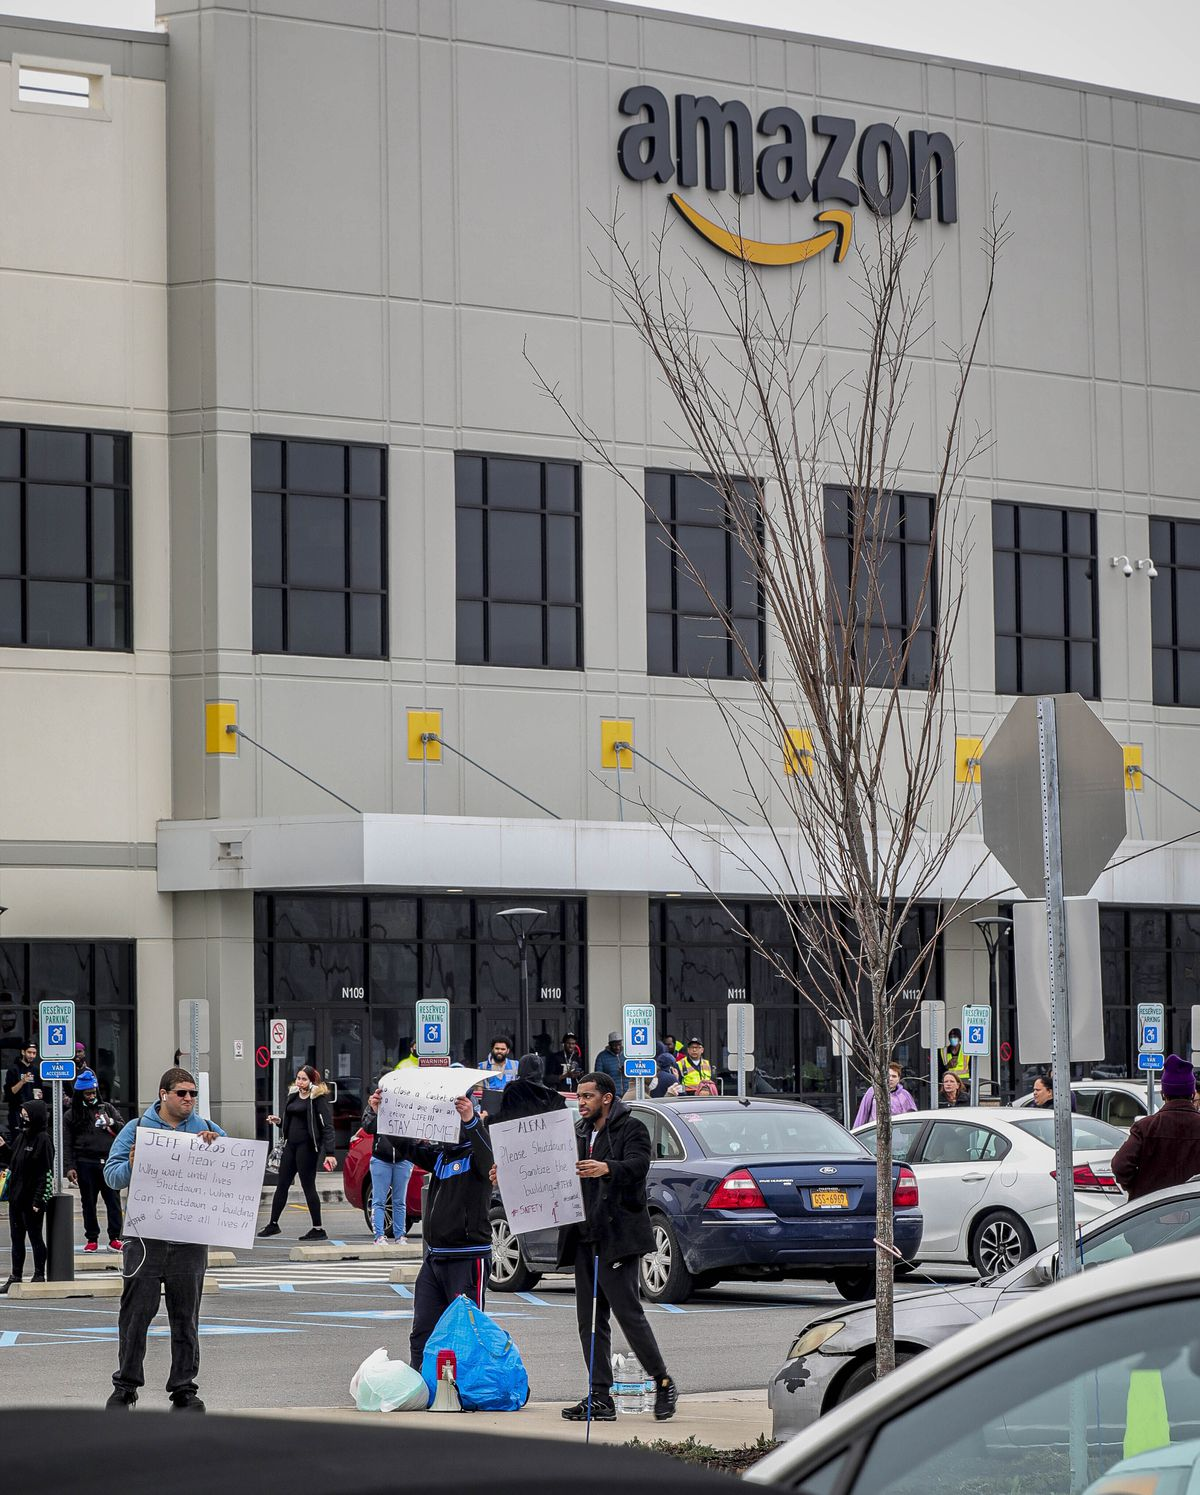 Workers at Amazon's fulfillment center in the Staten Island borough of New York protest work conditions in the company's warehouse.